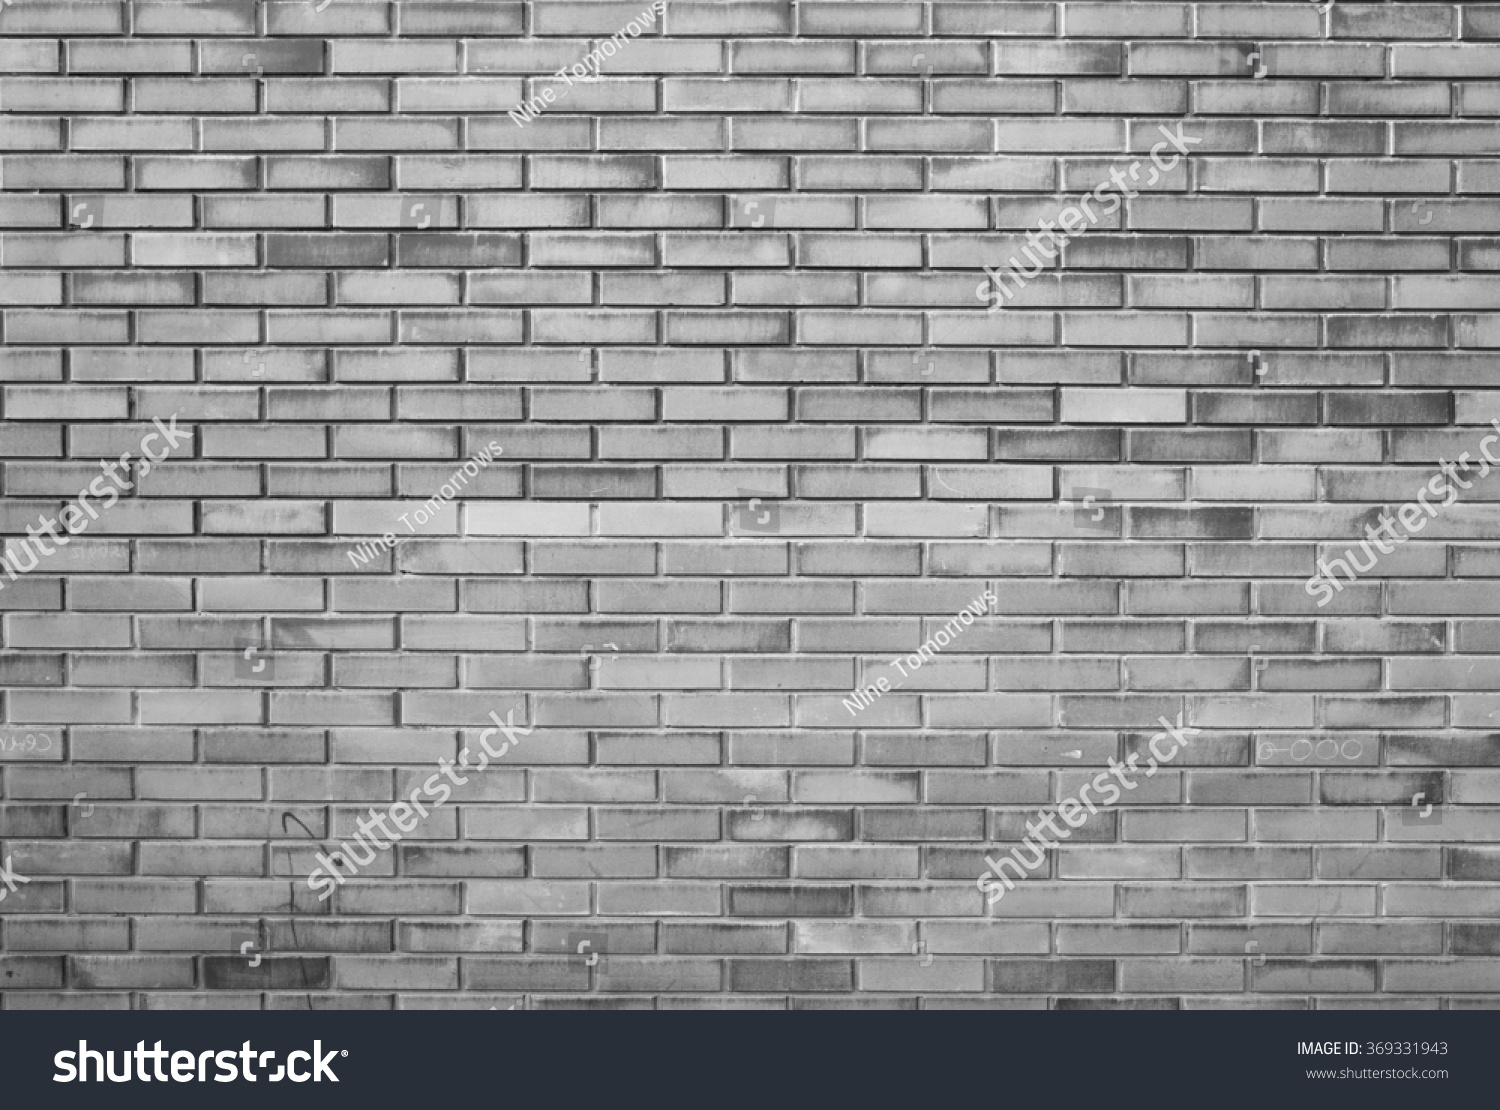 Plain wood table with hipster brick wall background stock photo - Grey Plain City Brick Wall